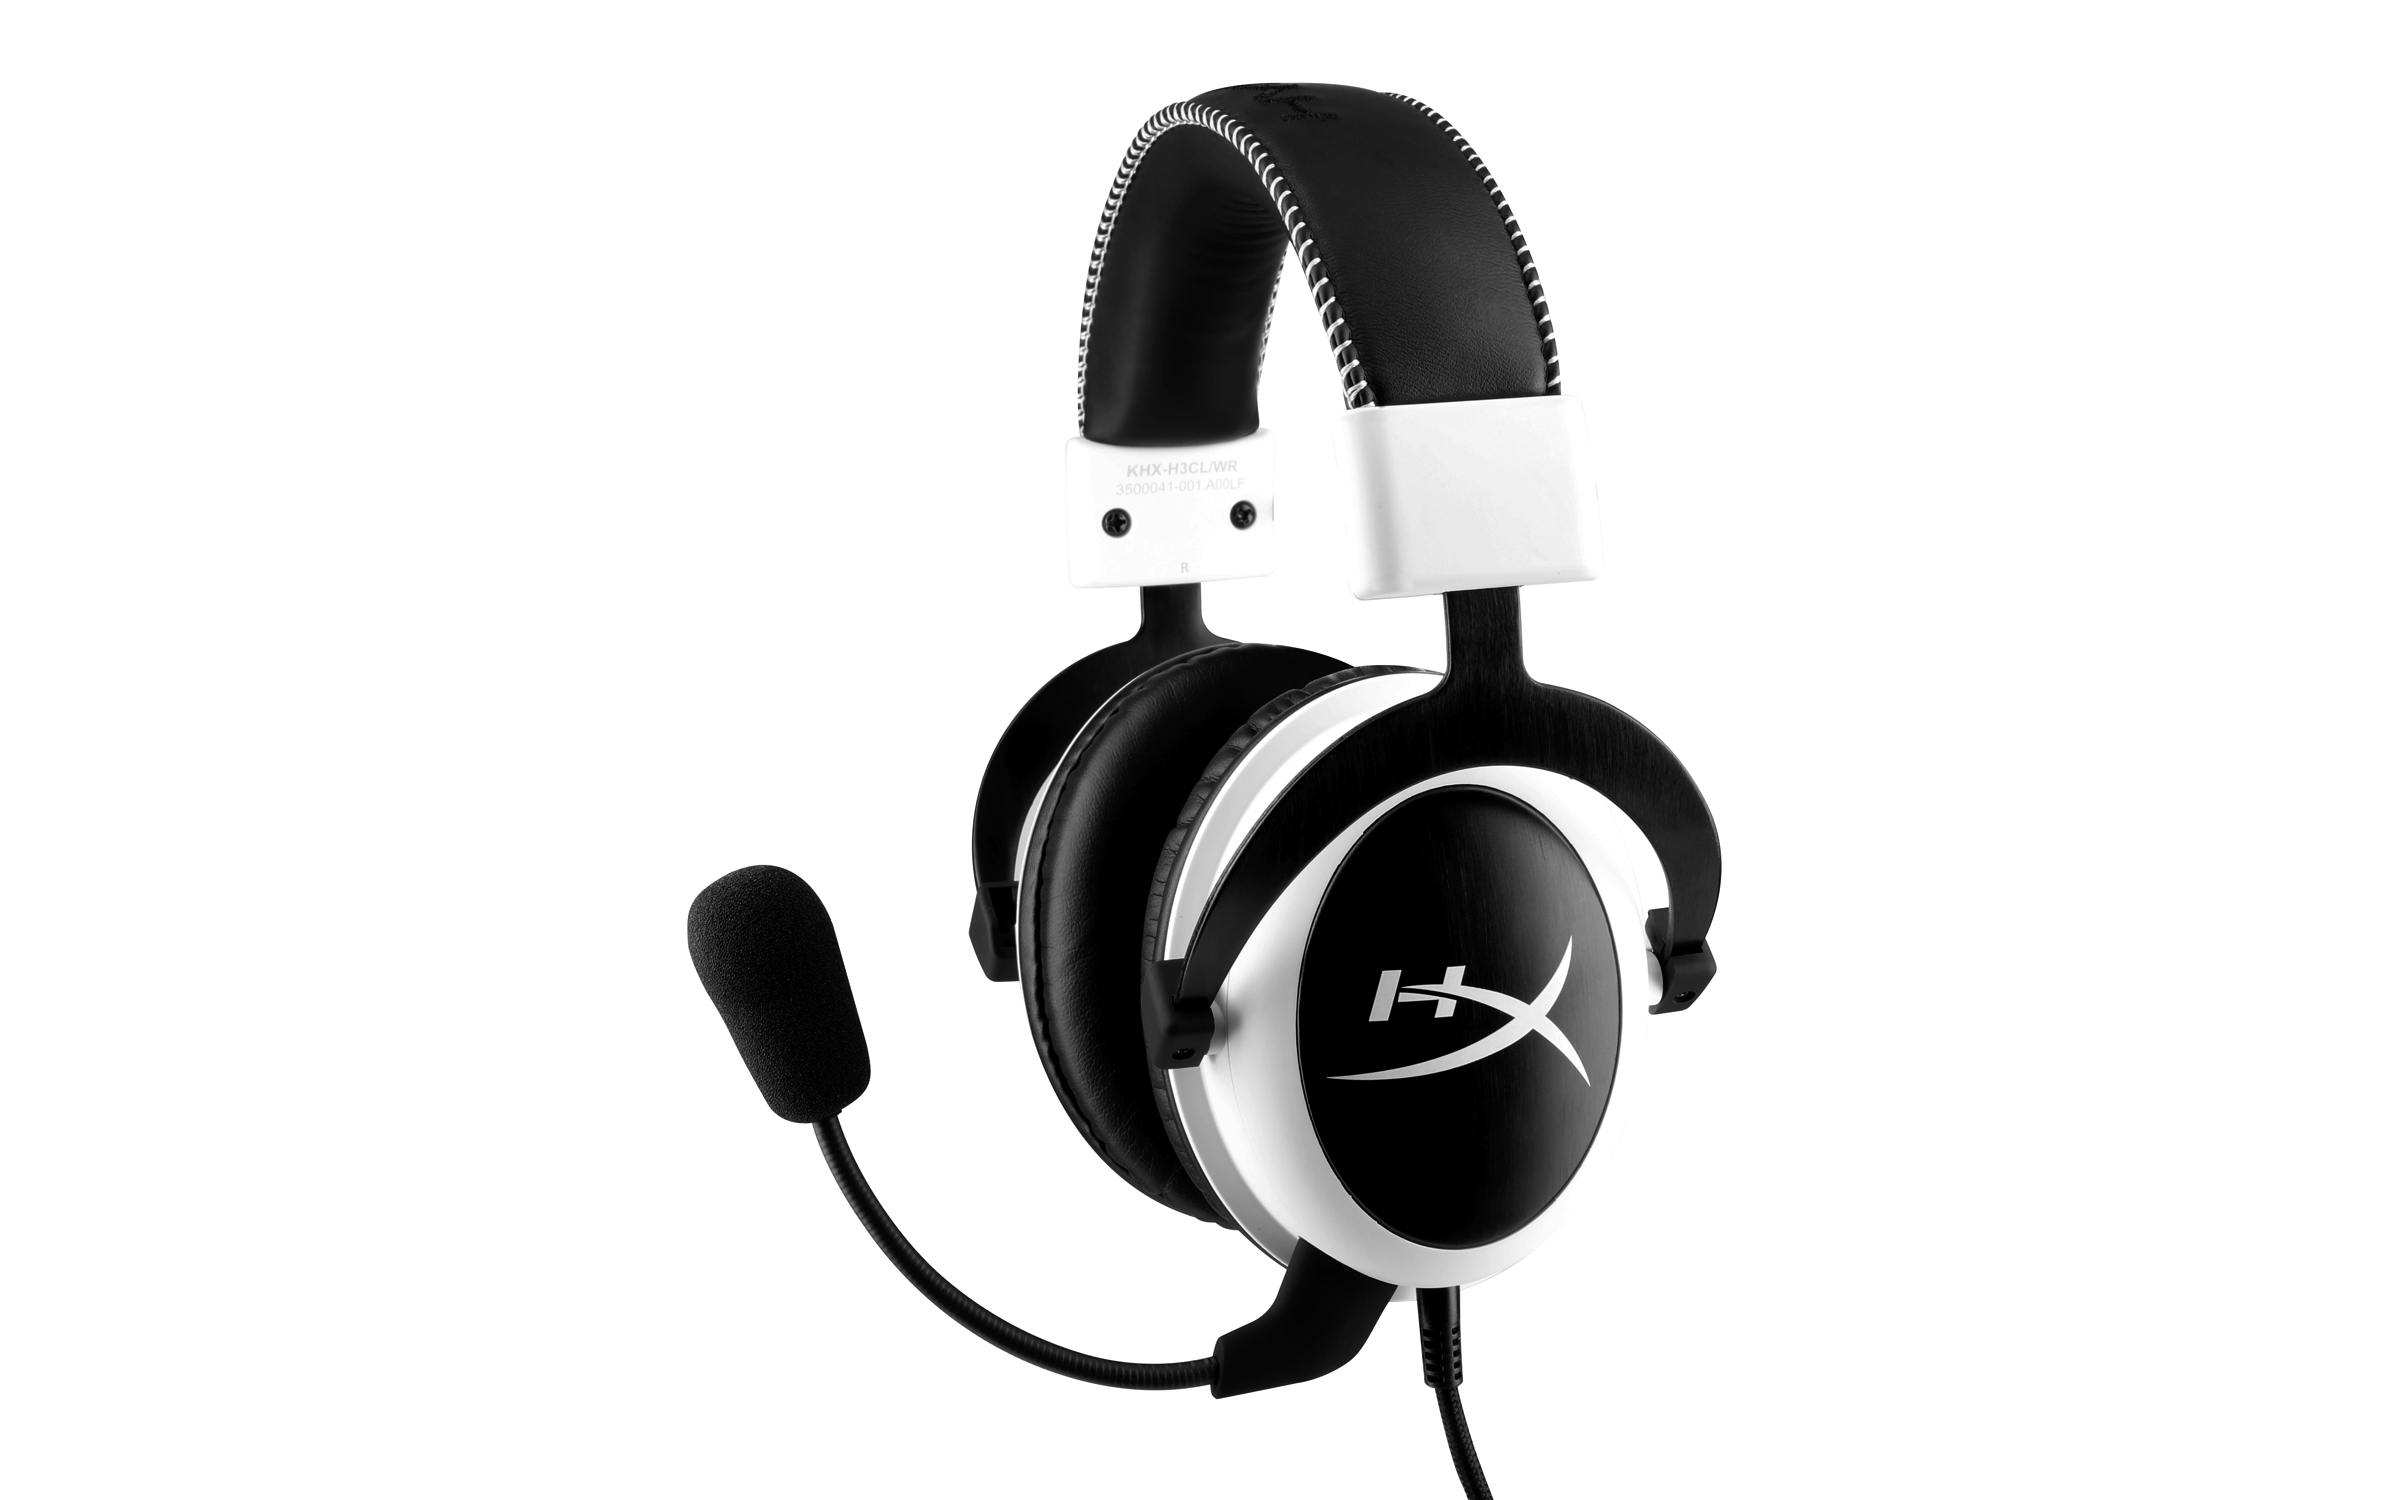 KINGSTON HyperX Cloud Gaming Headset - Bílý